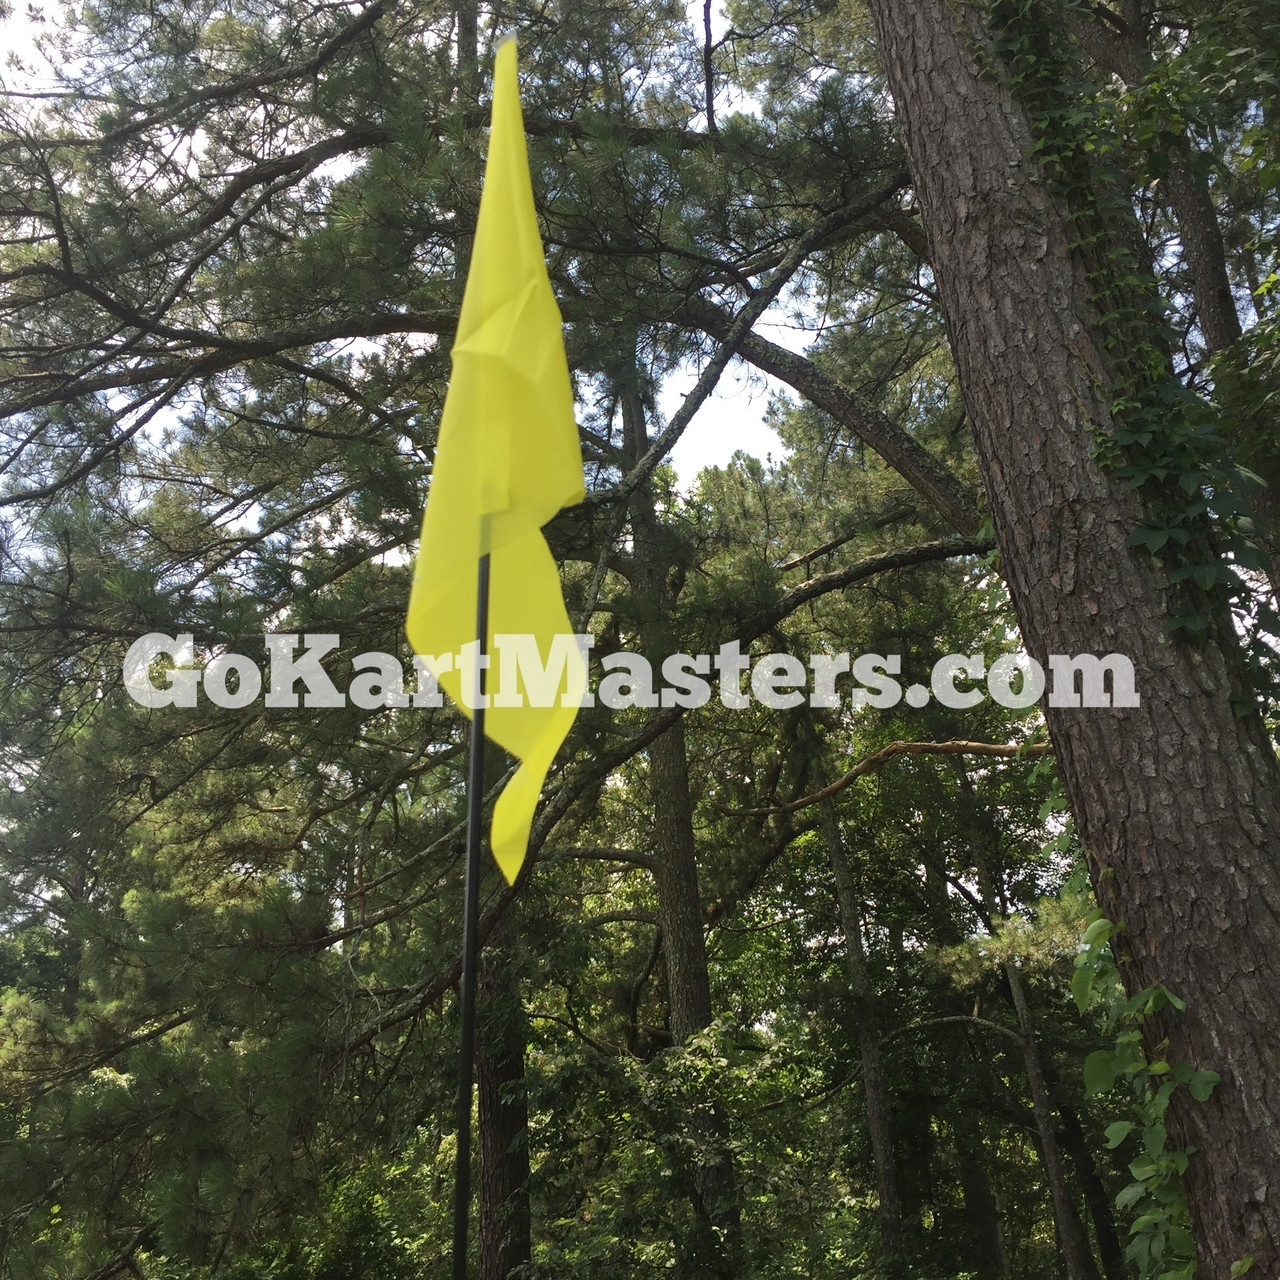 TrailMaster Blazer4 150 Go Kart - Flag with Pole